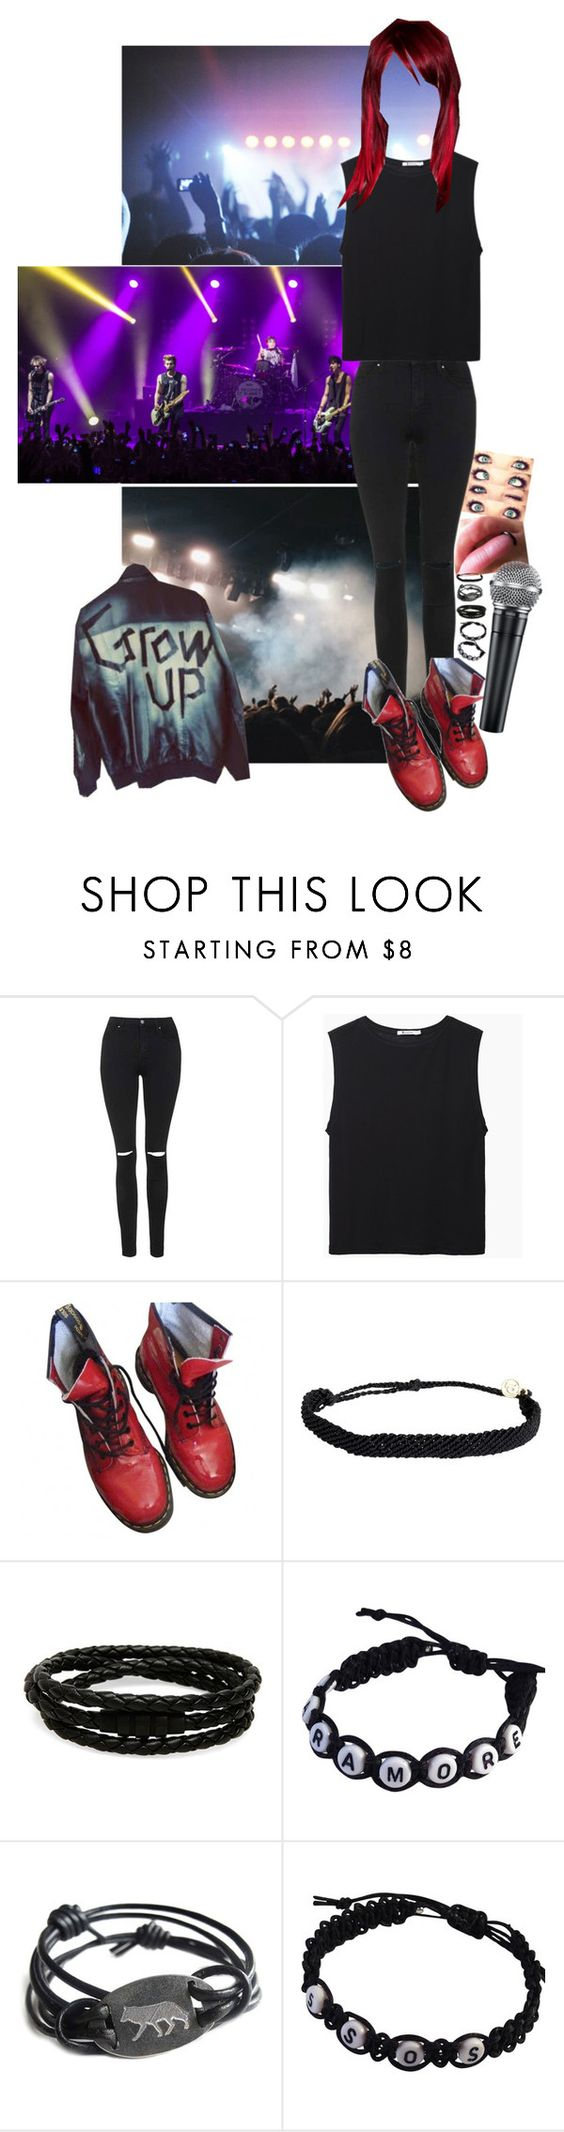 """Casual. Show with 5sos. Black and red. Red hair and ripped jeans. Black tanks and bracelets. Dr martens and graphic jackets. Lip rings and microphones."" by avintagemystery ❤ liked on Polyvore featuring Topshop, T By Alexander Wang, Dr. Martens, Pura Vida and Porsche Design"